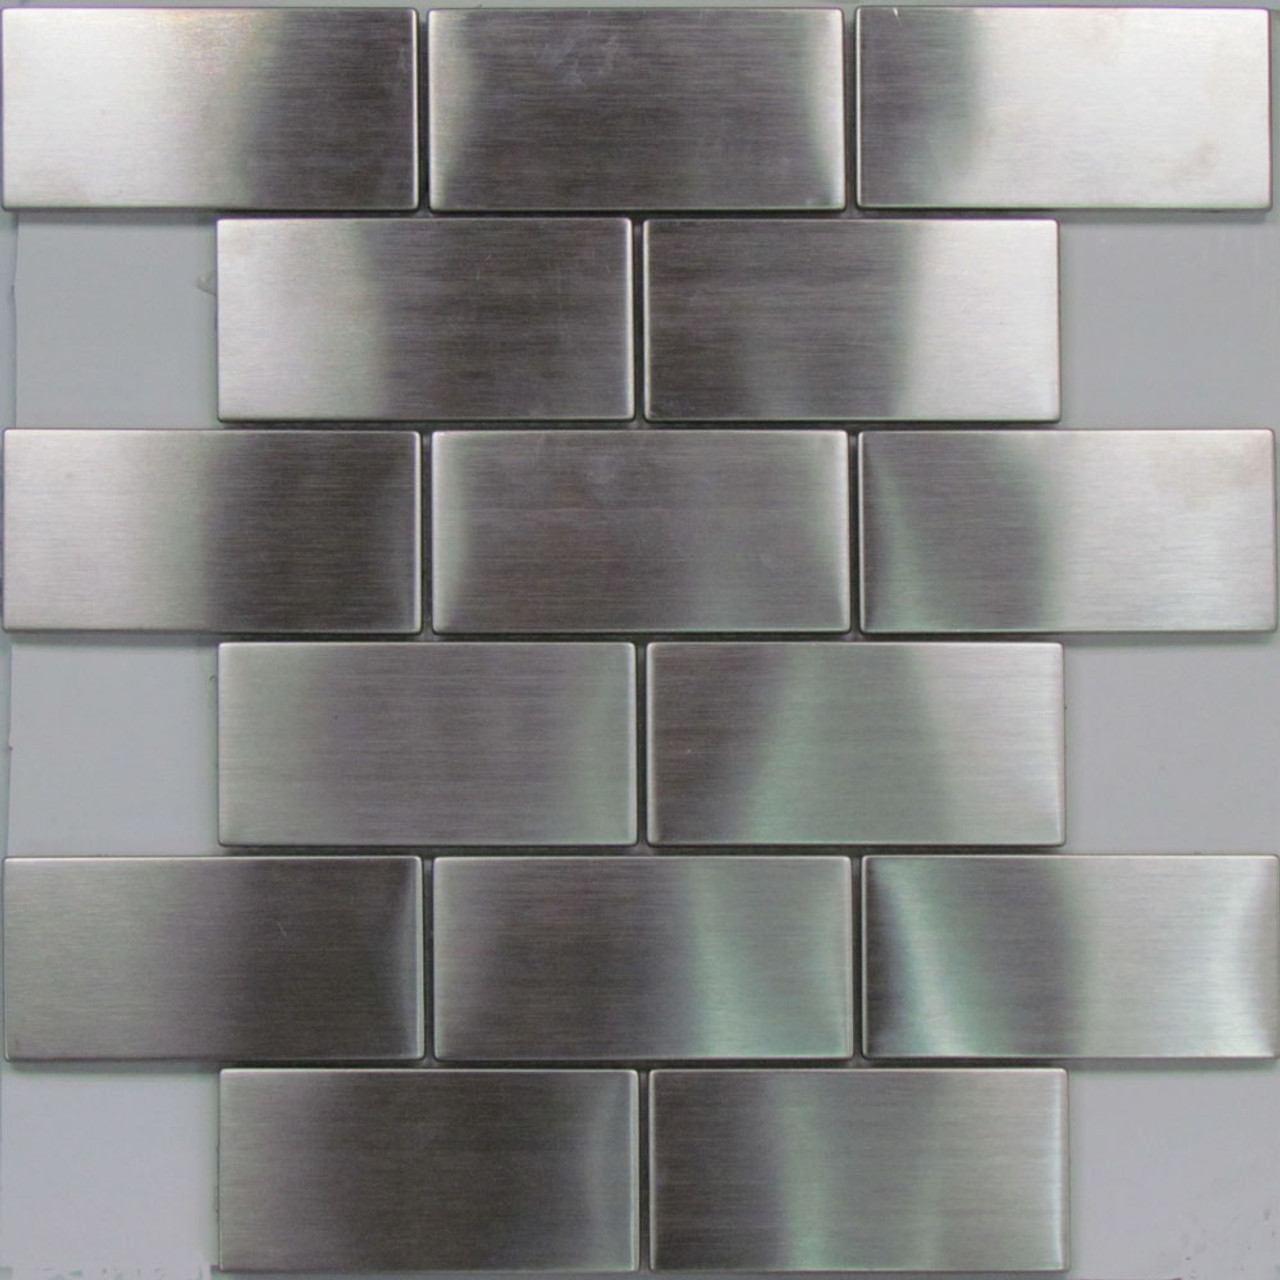 Sample Stainless Steel Metal Pattern Mosaic Tile Kitchen: 0801 Stainless Steel Subway Mosaic Tiles